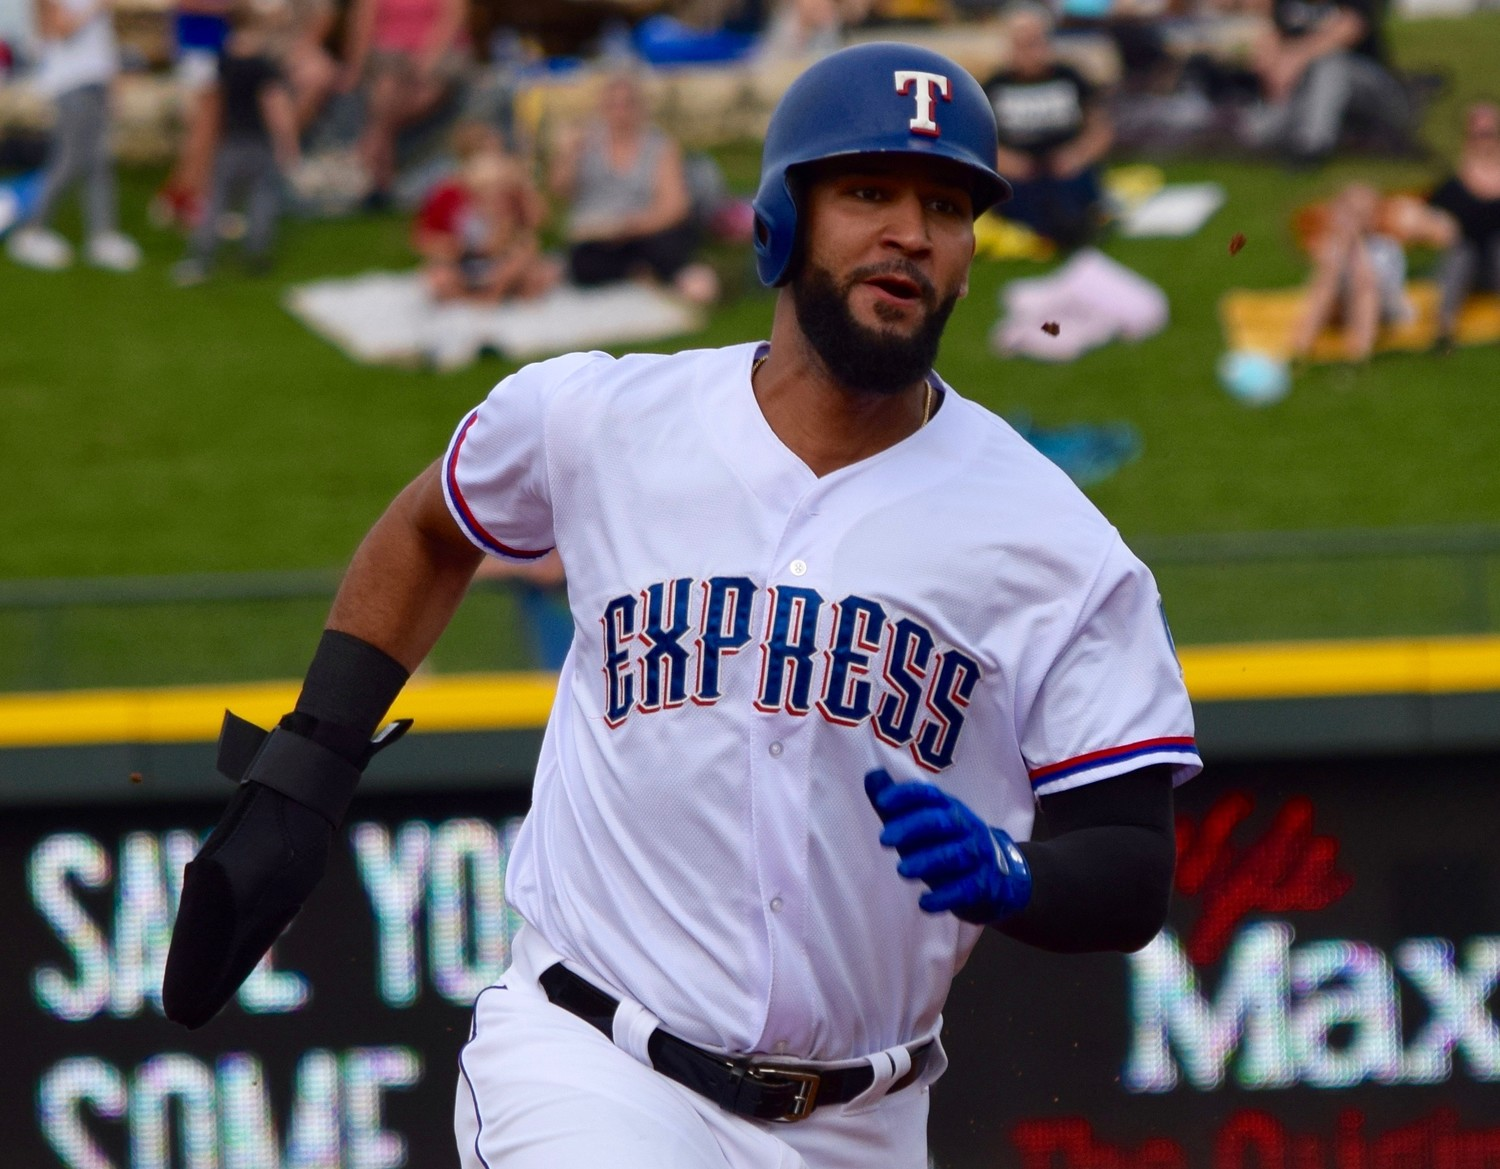 Rangers outfielder Nomar Mazara has 40 hits, 19 RBIs and two home runs in 27 career games with the Round Rock Express.